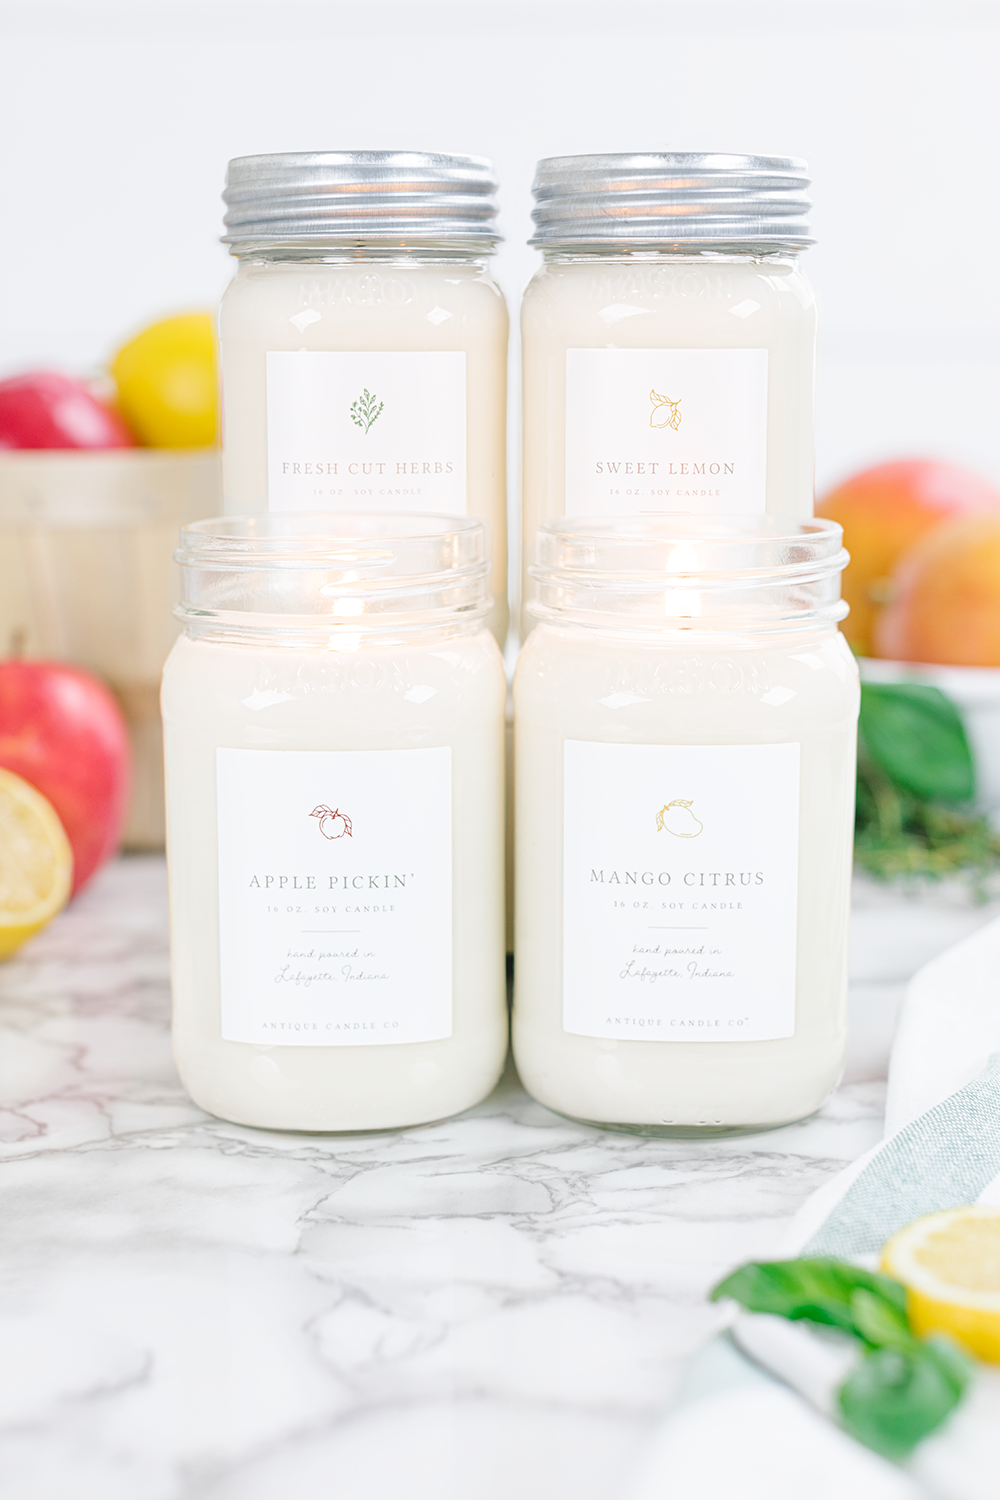 These made in America small batch candles using the finest ingredients are the absolutely best smelling candles I've ever smelled kellyelko.com #candles #candle #giftsforher #giftguide #farmhouse #masonjar #masonjardecor #farmhousedecor #fixerupper